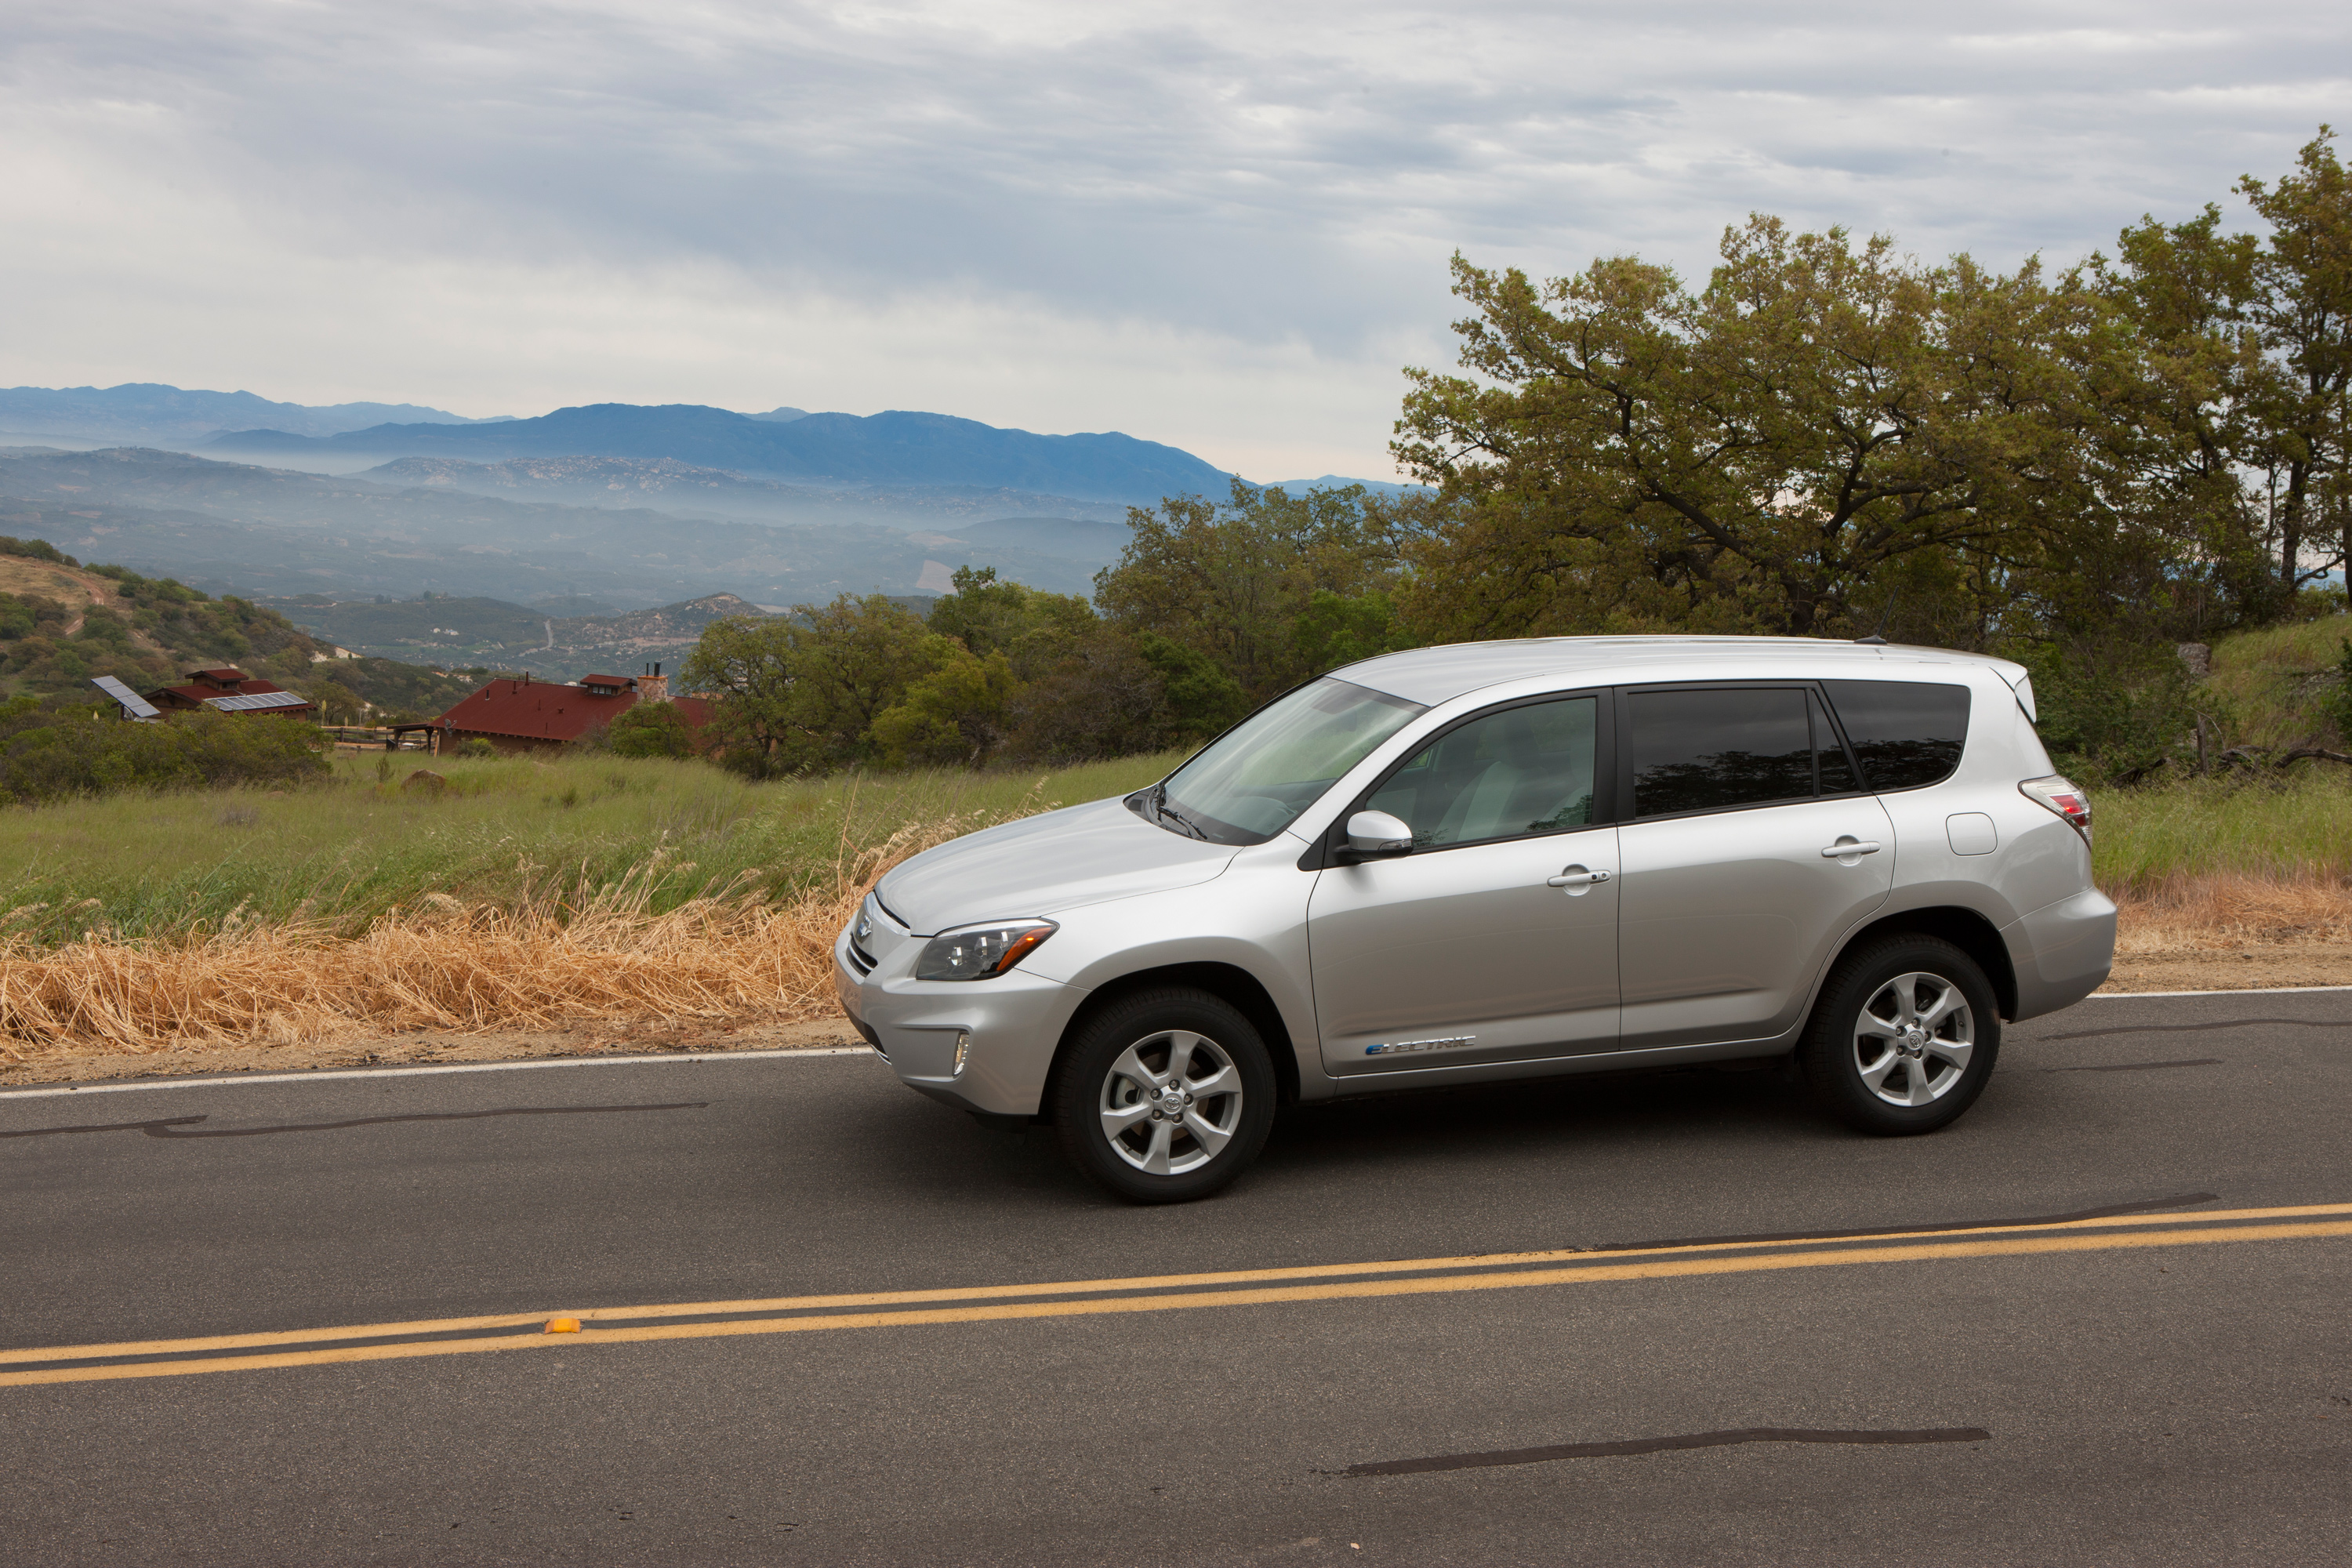 4g-w4_Toyota to release RAV4 EV this Summer; pricing from $49,800 | Tech Prezz